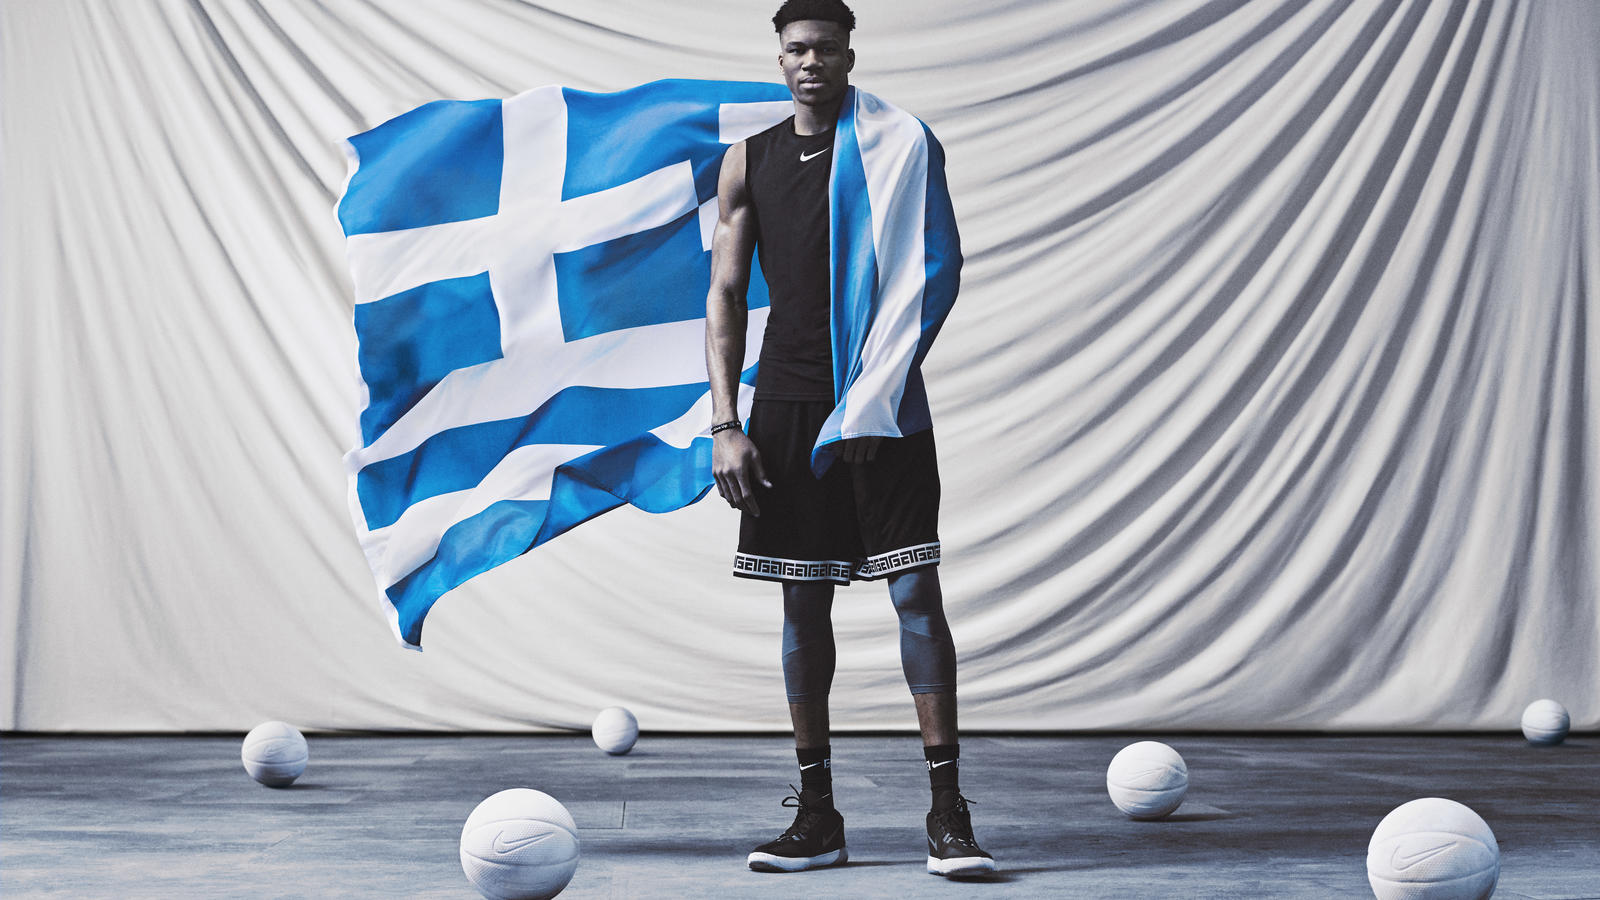 nike-giannis-antetokounmpo-air-zoom-freak-1-official-images-and-release-date